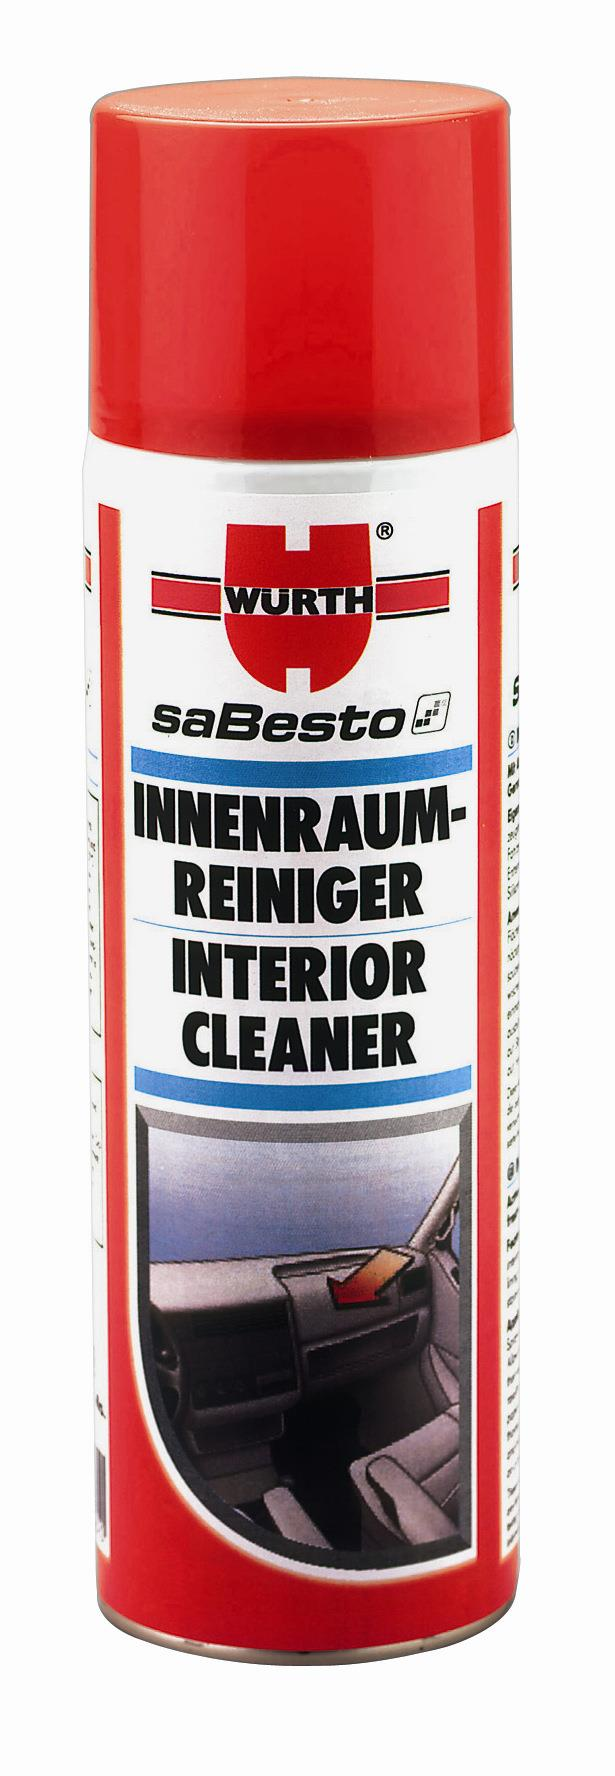 wurth interior cleaner special cleaning foam for end 11 14 2015 8 15 00 pm. Black Bedroom Furniture Sets. Home Design Ideas